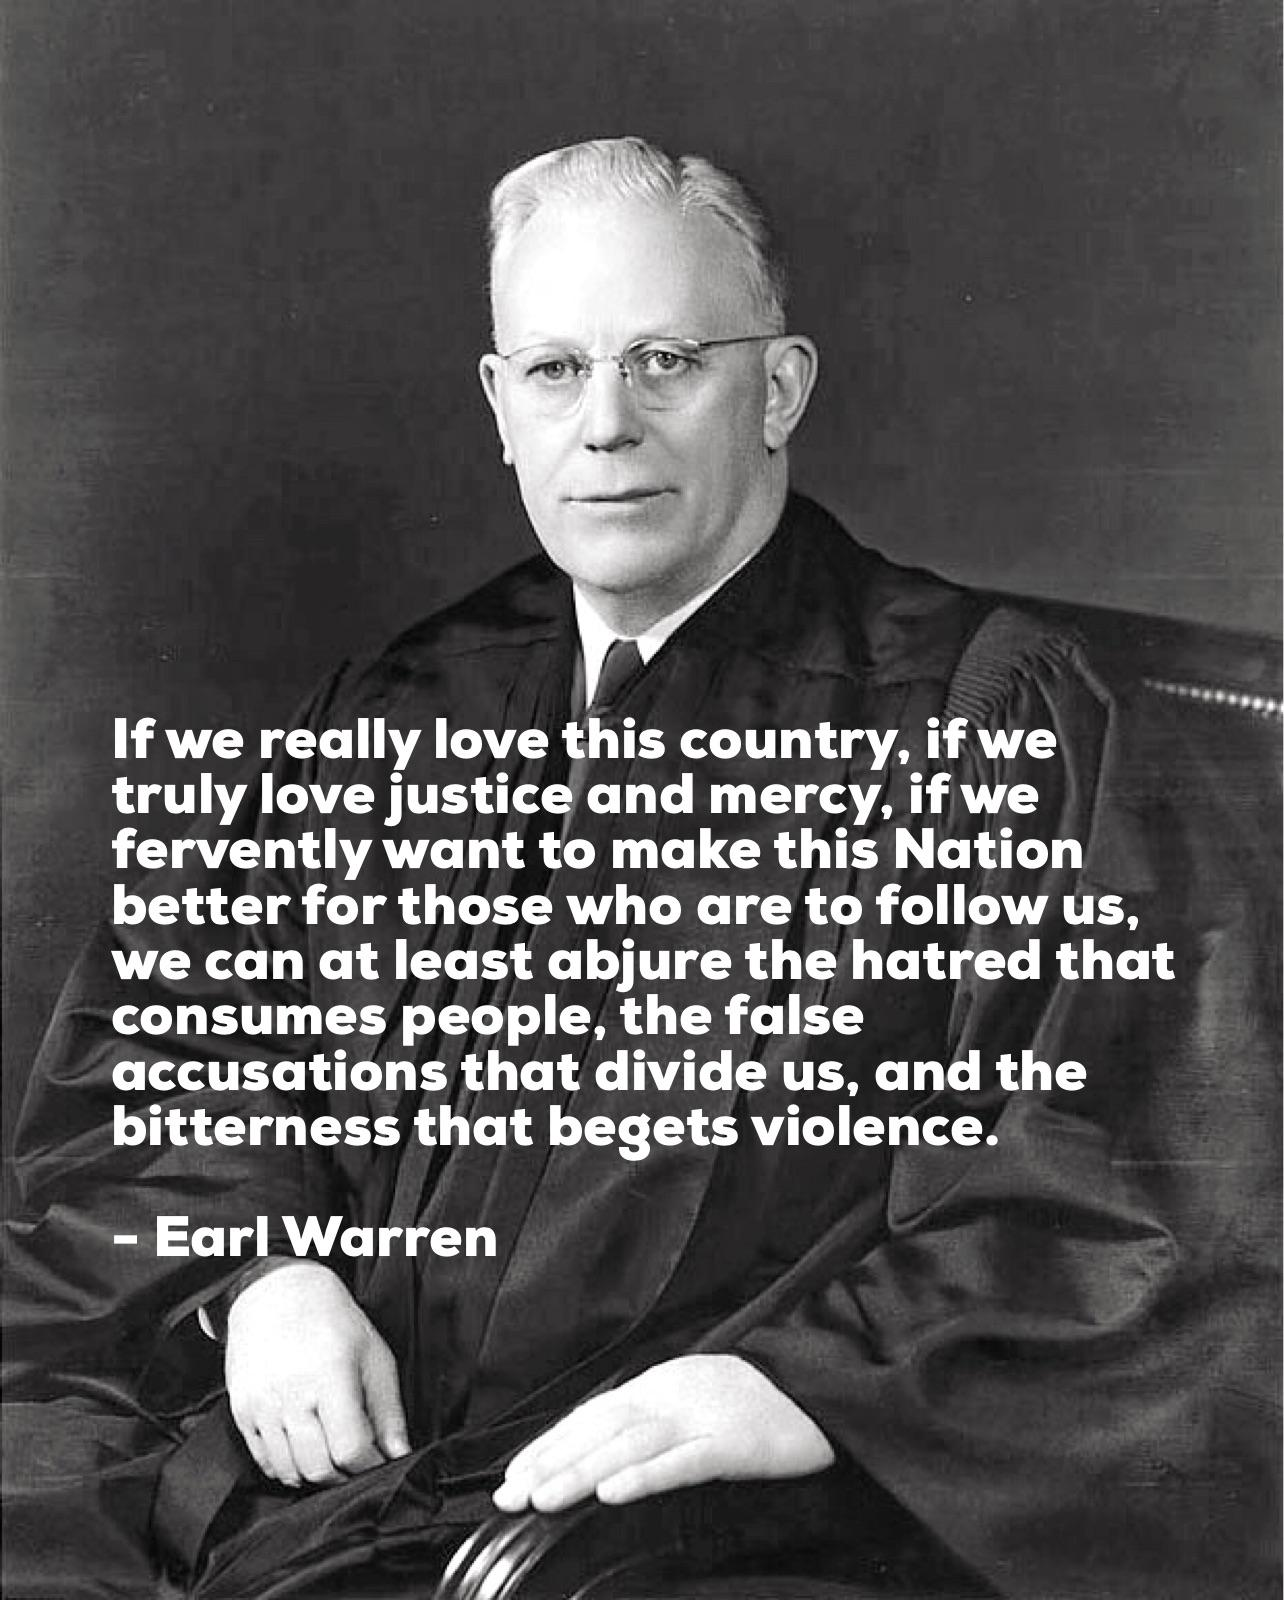 """If we really love this country, if we truly love justice and mercy . . . we can at least abjure the hatred that consumes people, the false accusations that divide us, and the bitterness that begets violence."" – Earl Warren [1284 x 1600](OC)"